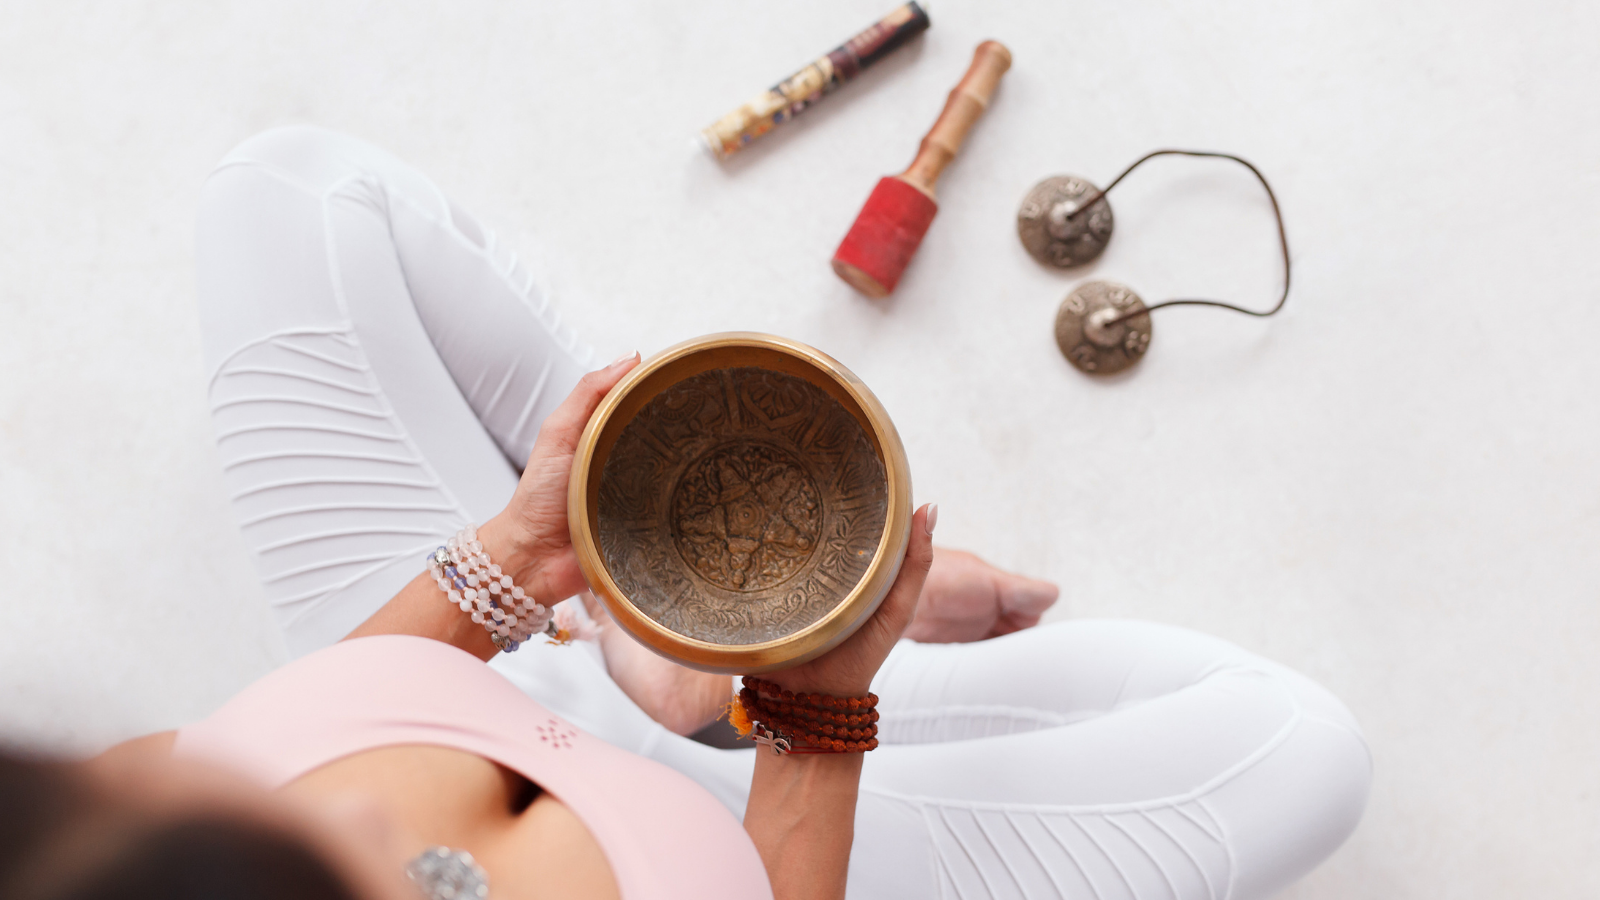 Young woman holding Tibetan singing bowl and pestle sitting on the floor next to mortar and fragrant candles for yoga and meditation